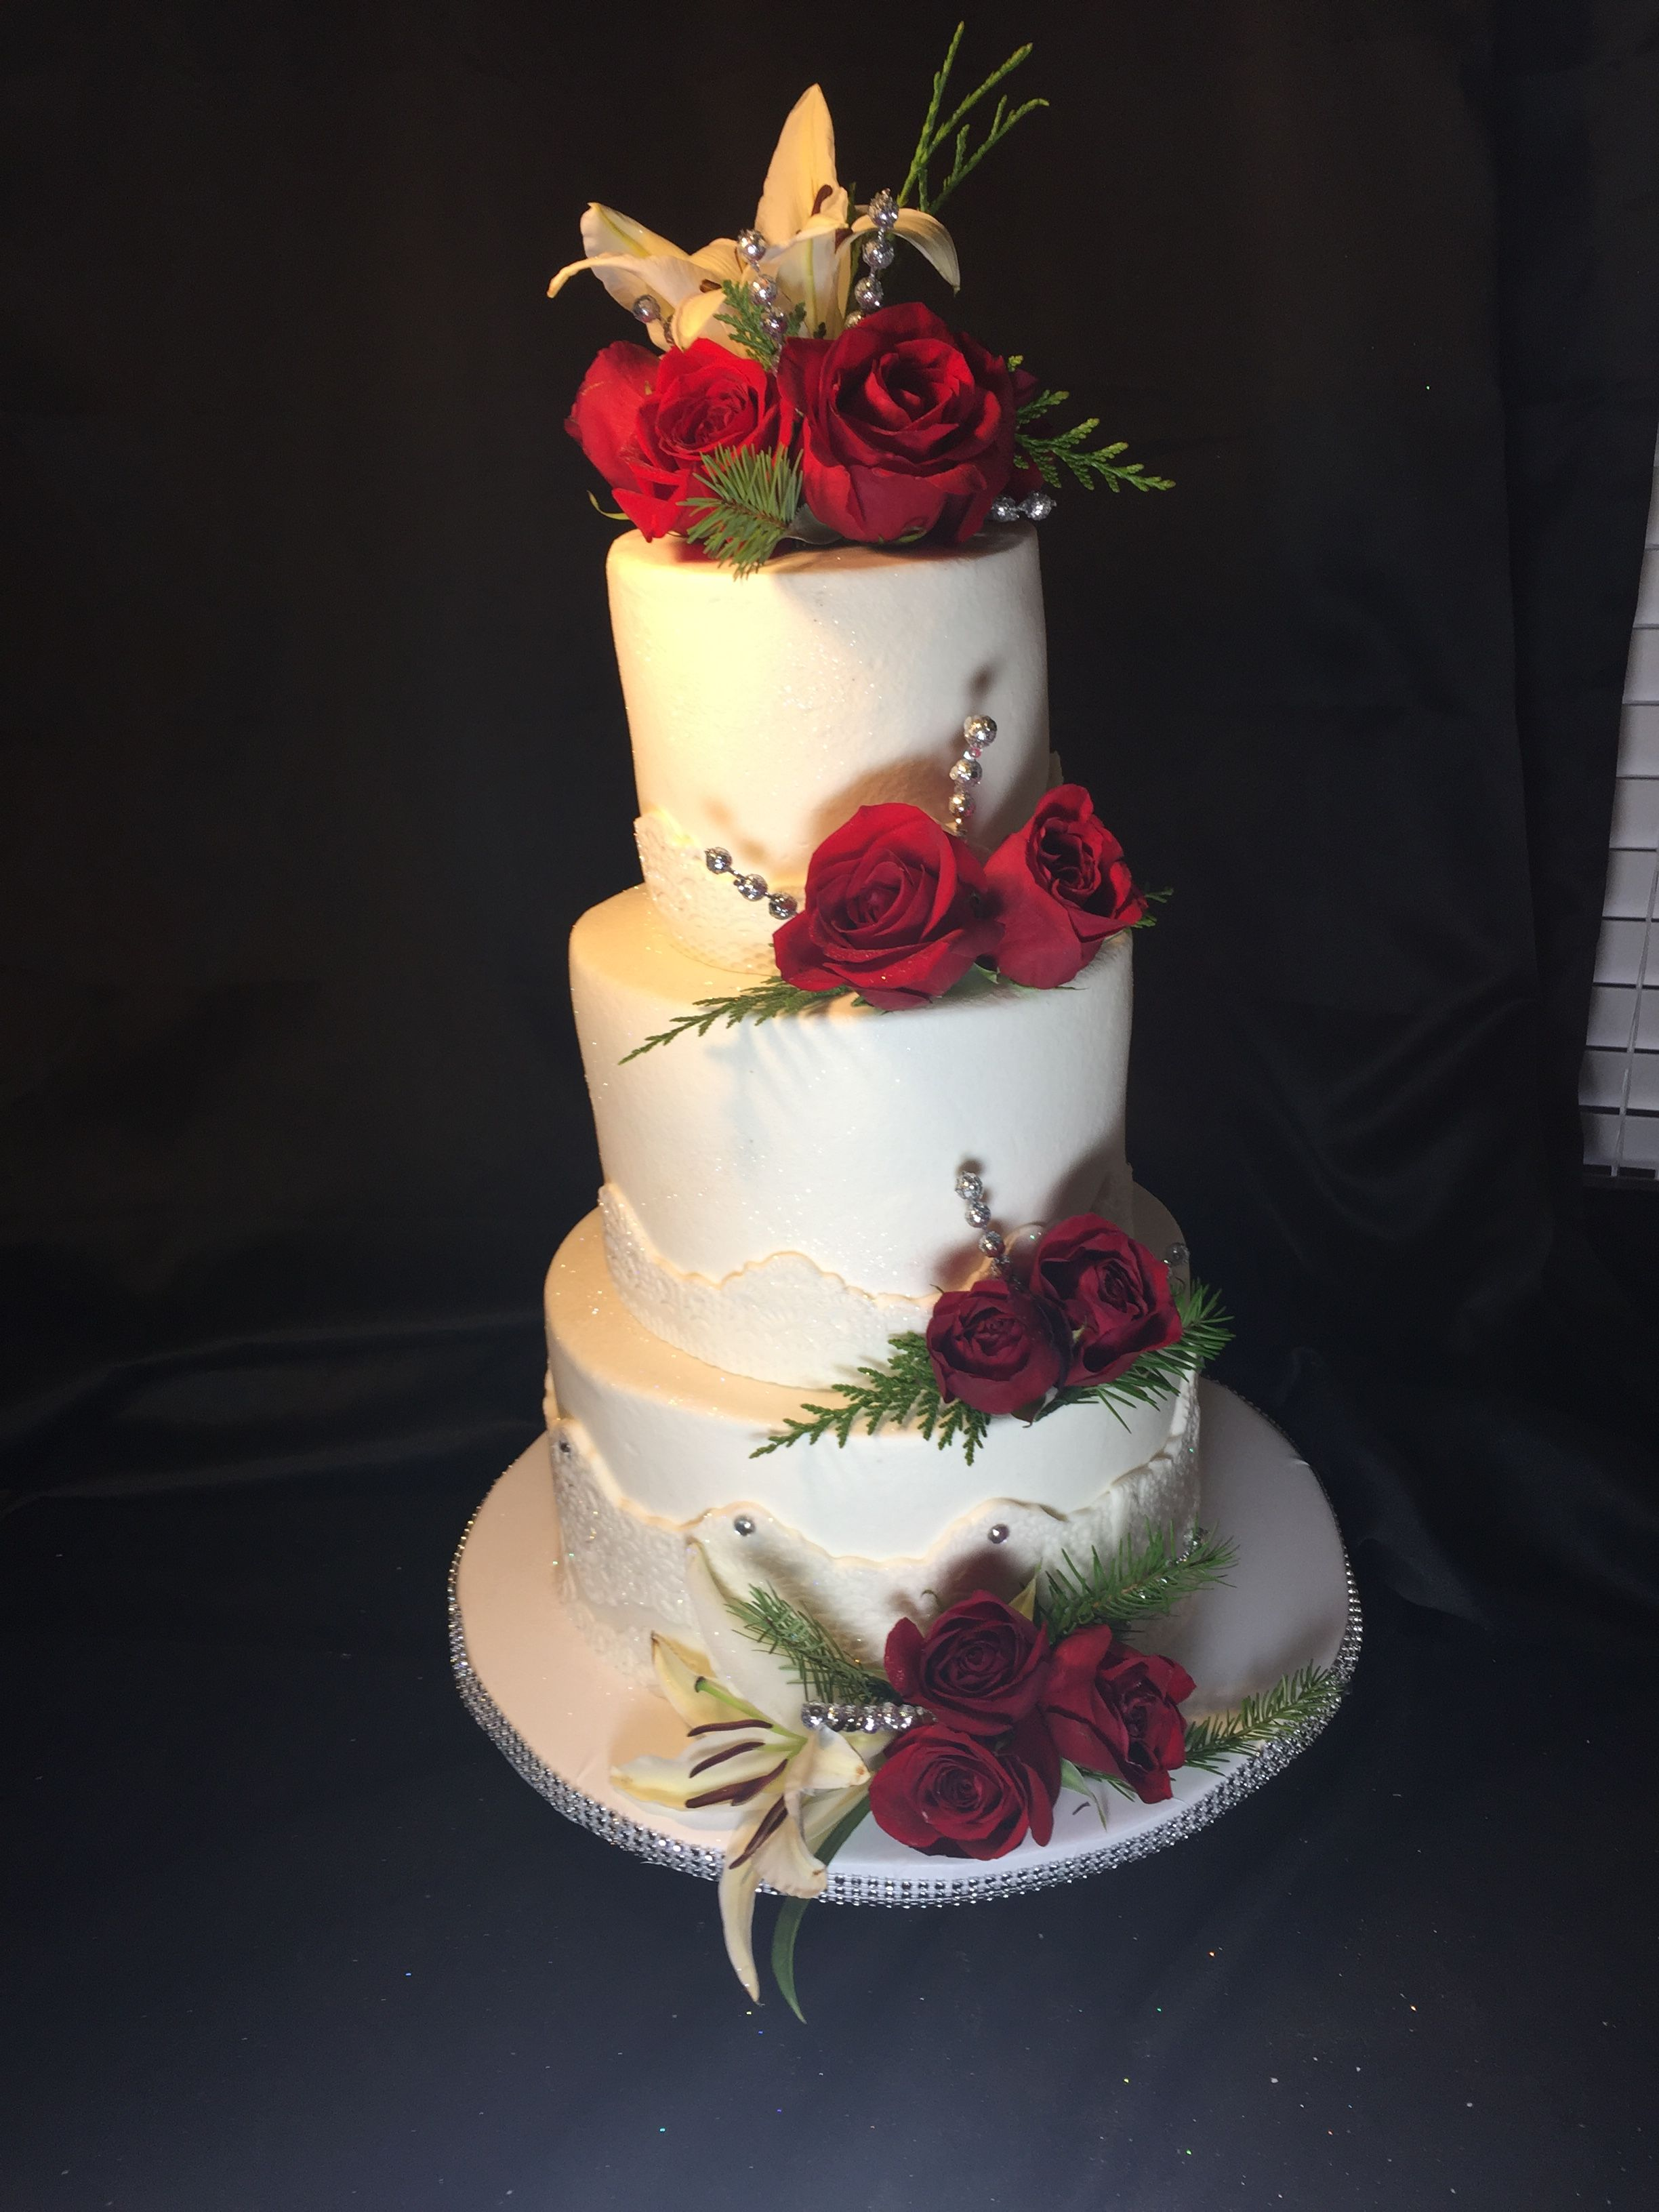 4 Tier Wedding Cake White And Red Holiday Design Wedding And